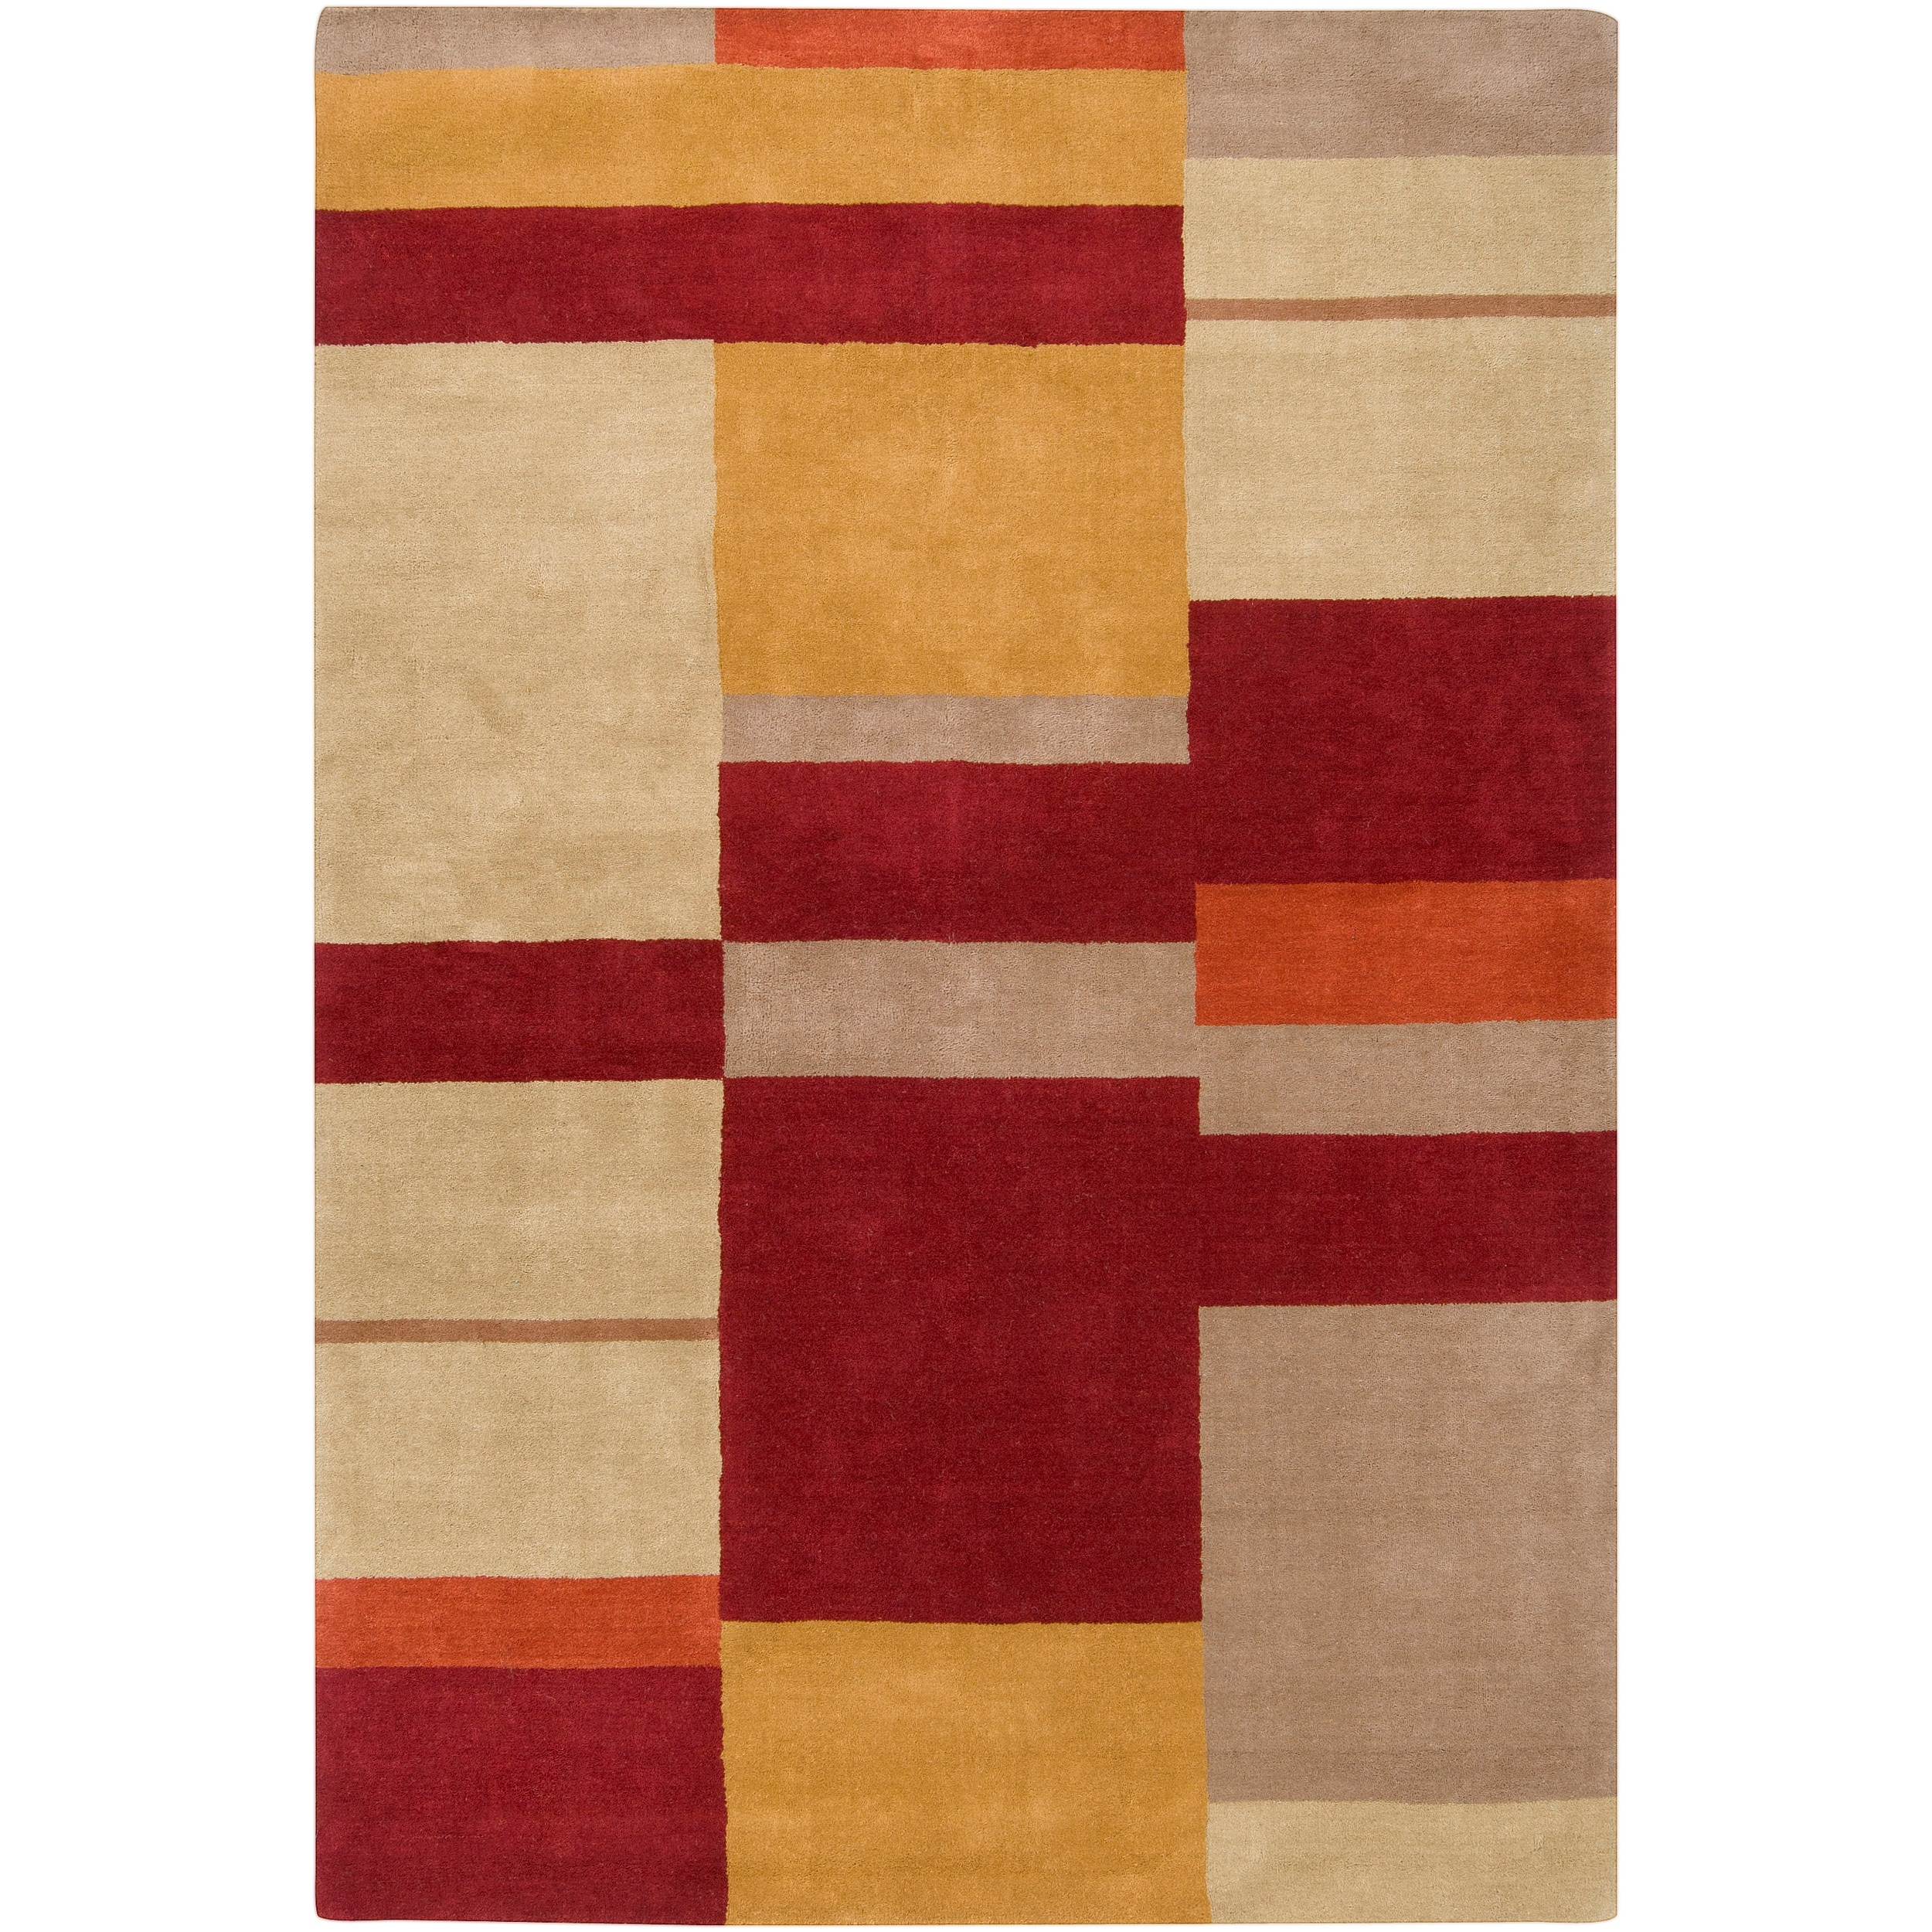 Hand-tufted Contemporary Multi Colored Squares Texico Wool Geometric Rug (5' x 8')